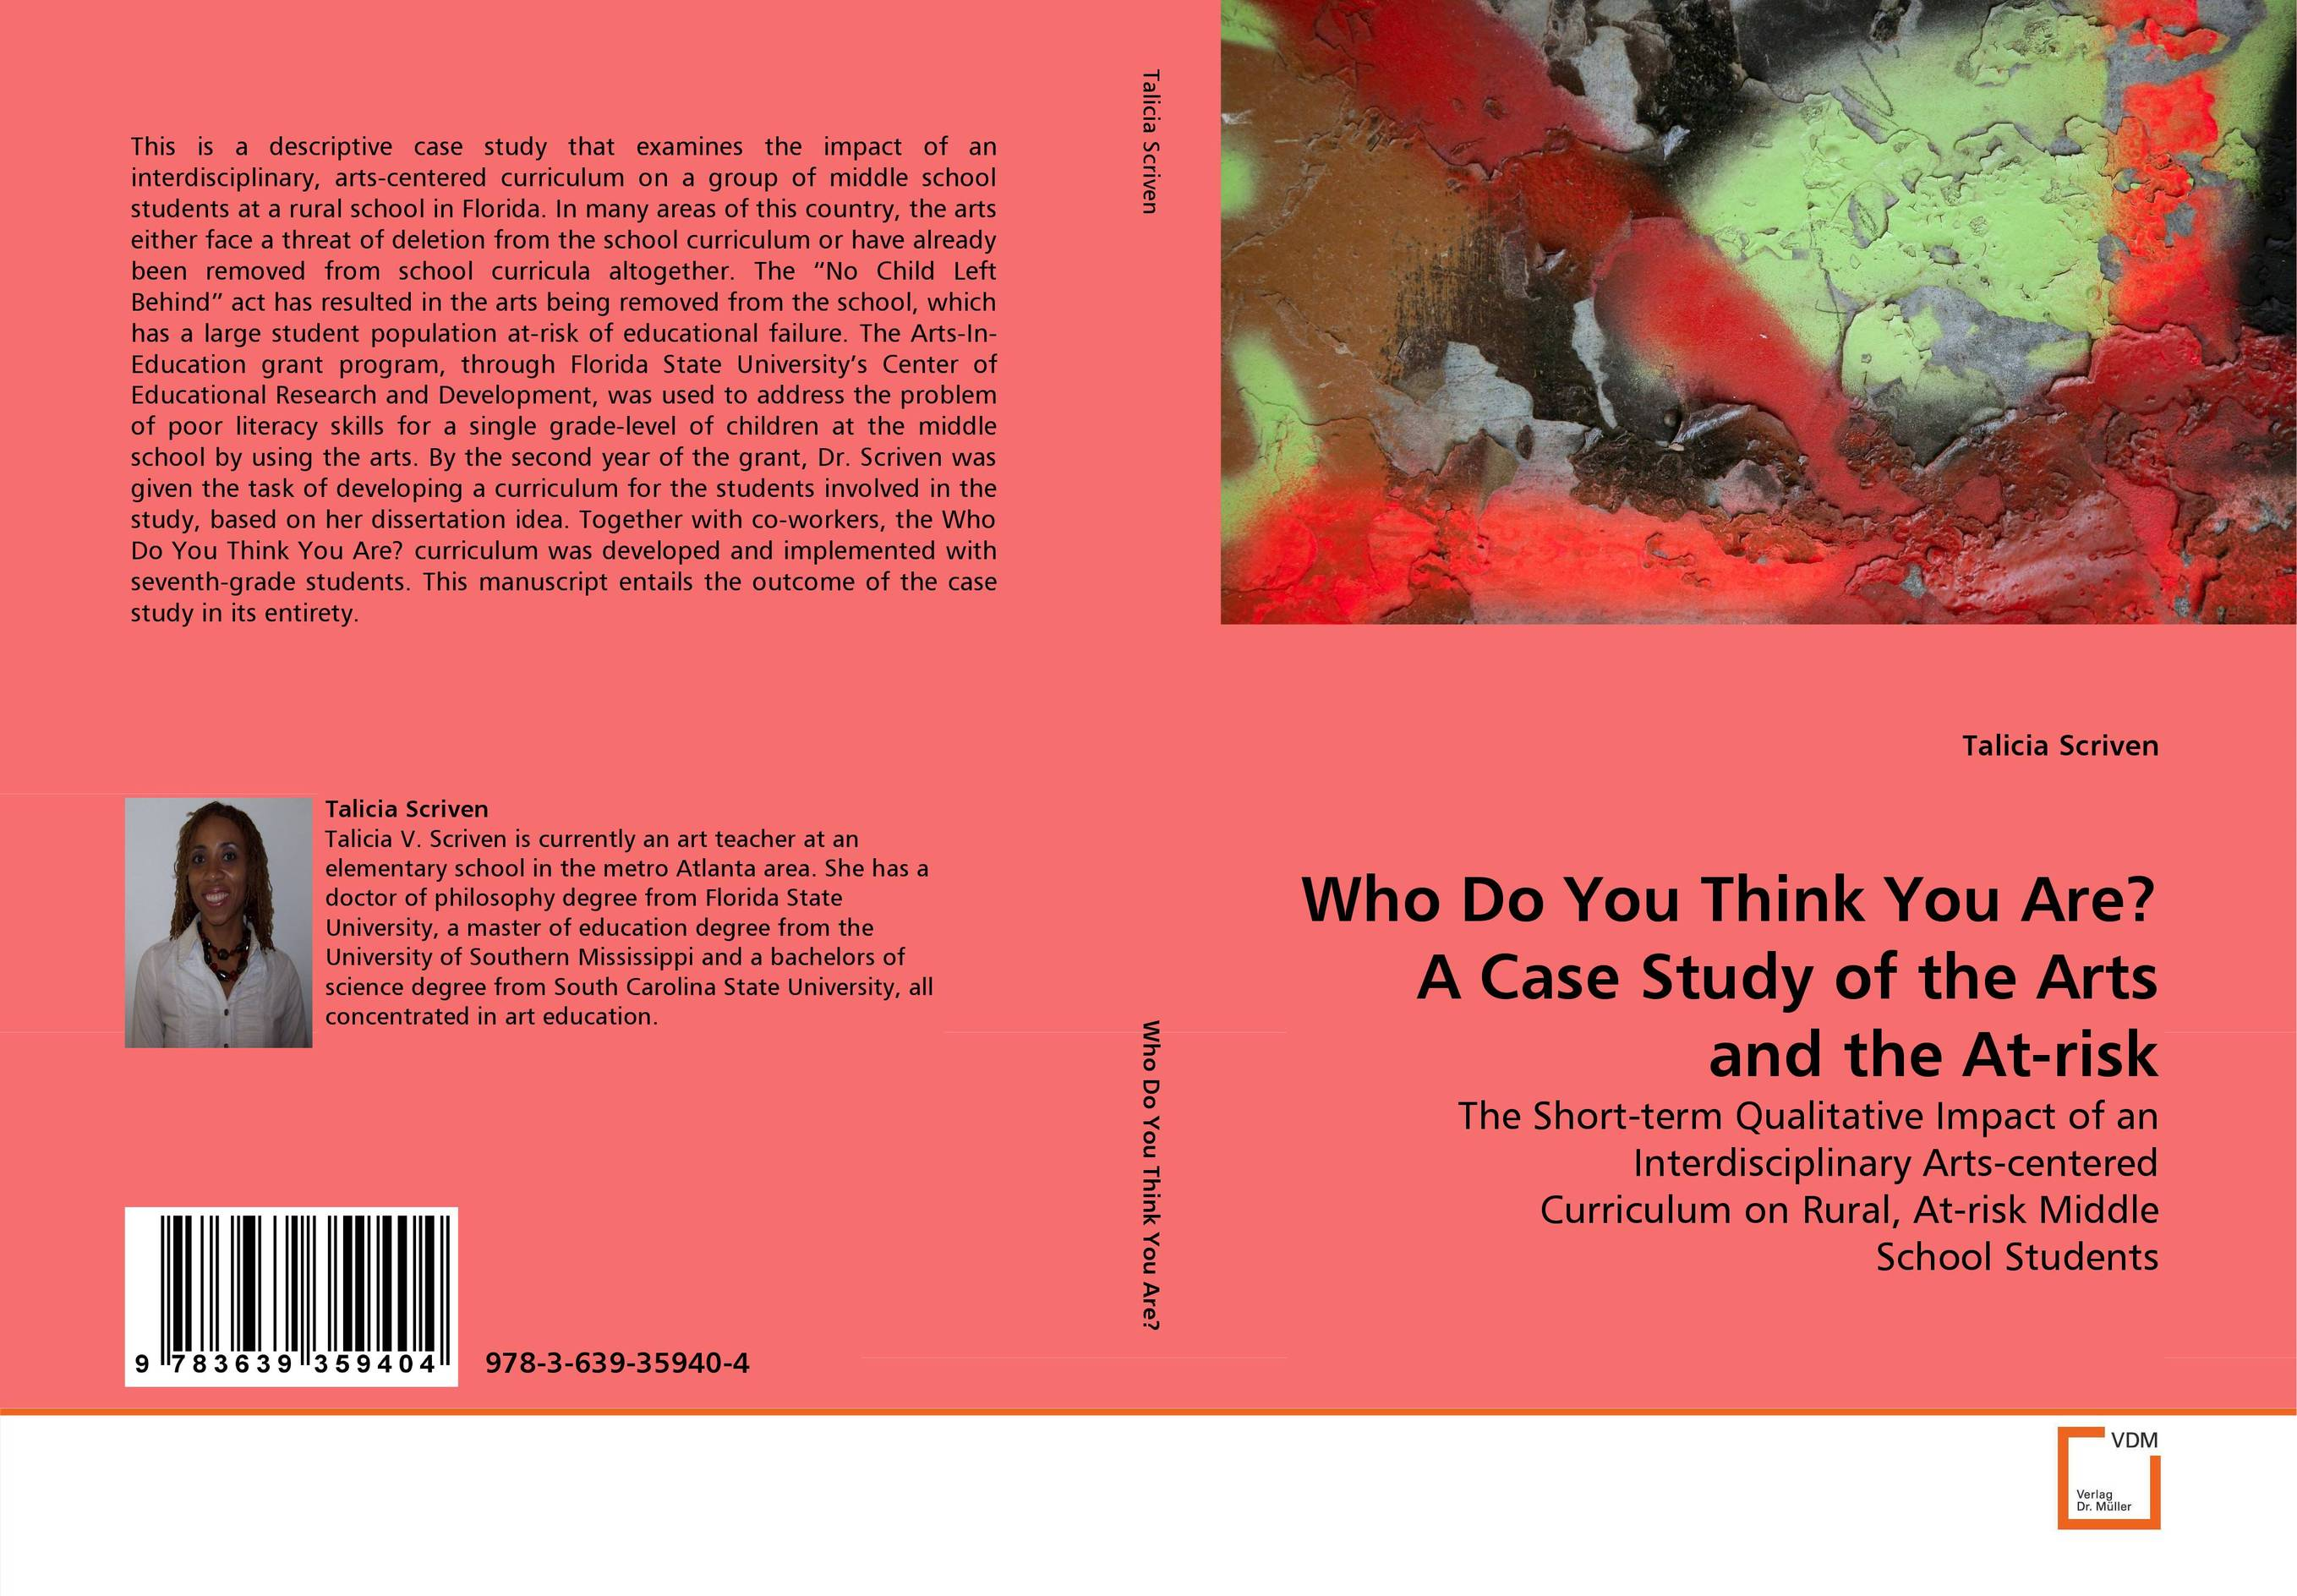 Who Do You Think You Are? A Case Study of the Arts and the At-risk laxmi paudyal intended and implemented curriculum of school health program in nepal